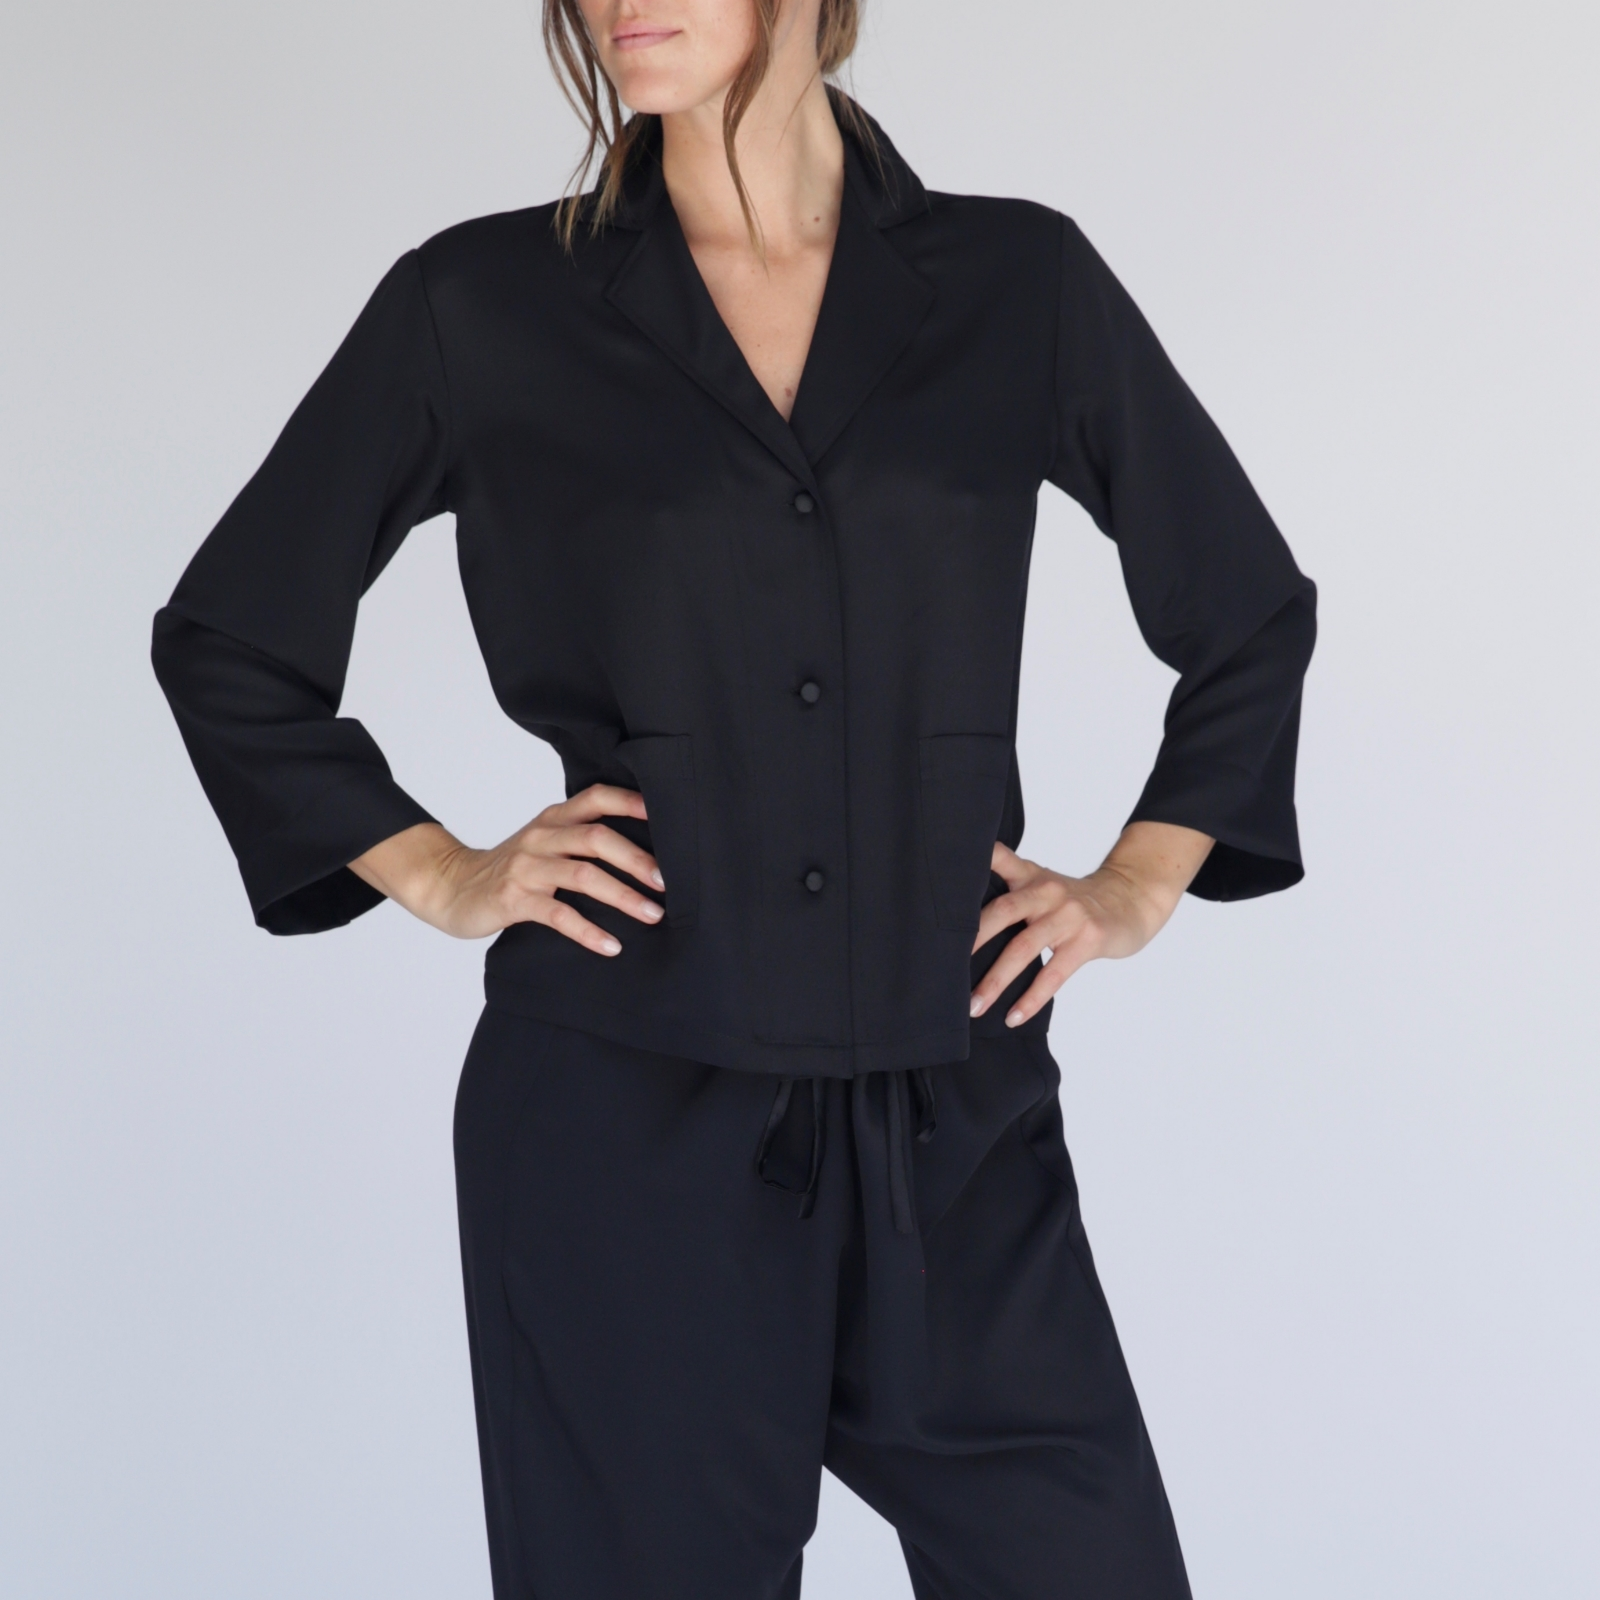 New PJ top_black.jpg